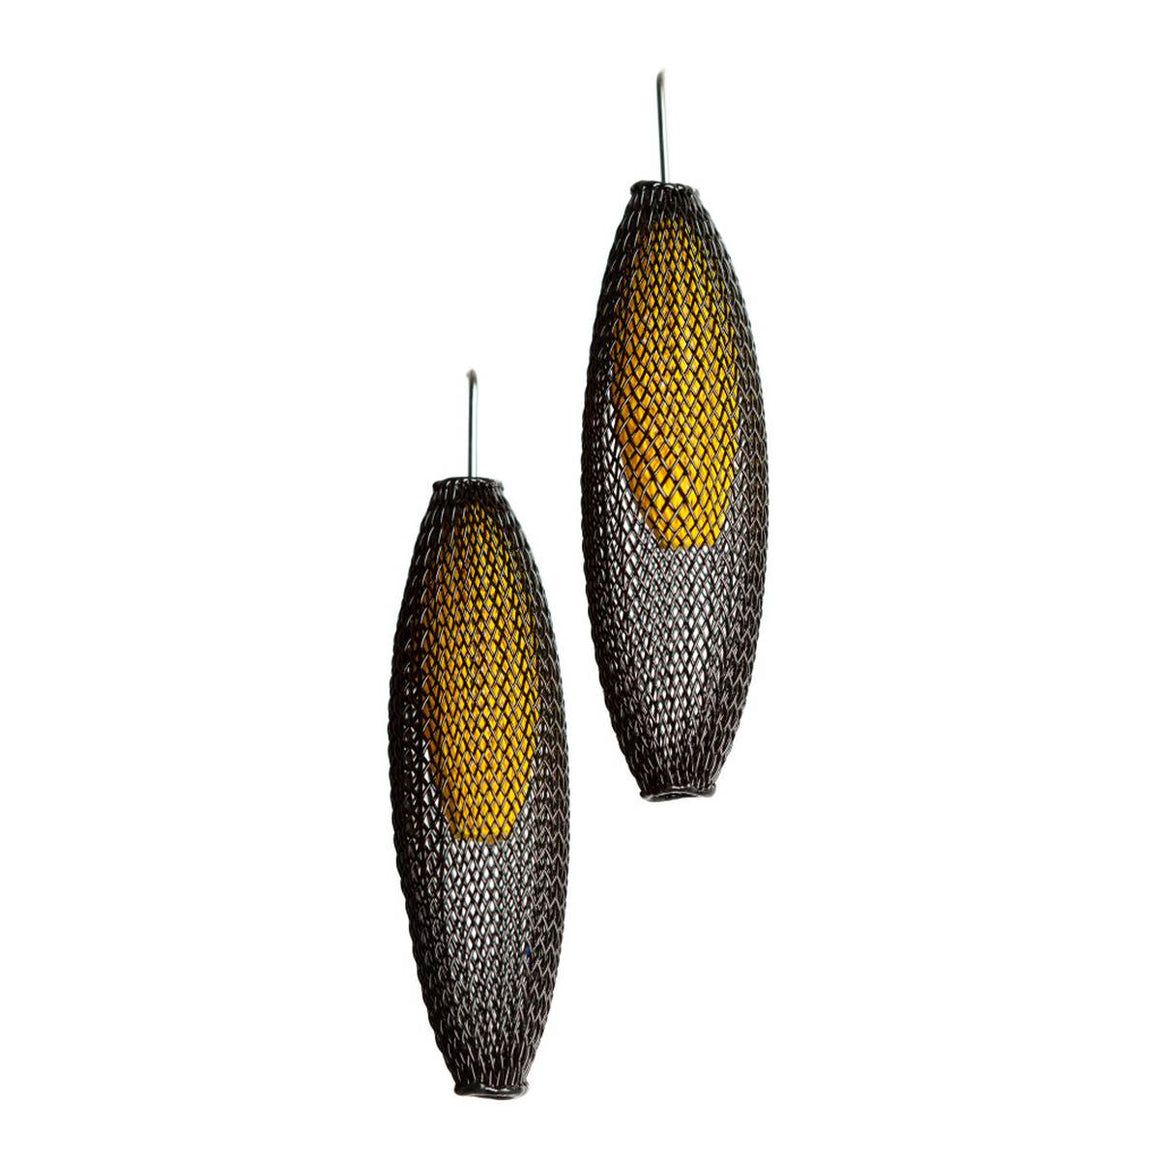 A pair of black and yellow earrings made from finely woven nylon mesh. Yellow Mesh tubes are visible contained inside Black mesh tubes.